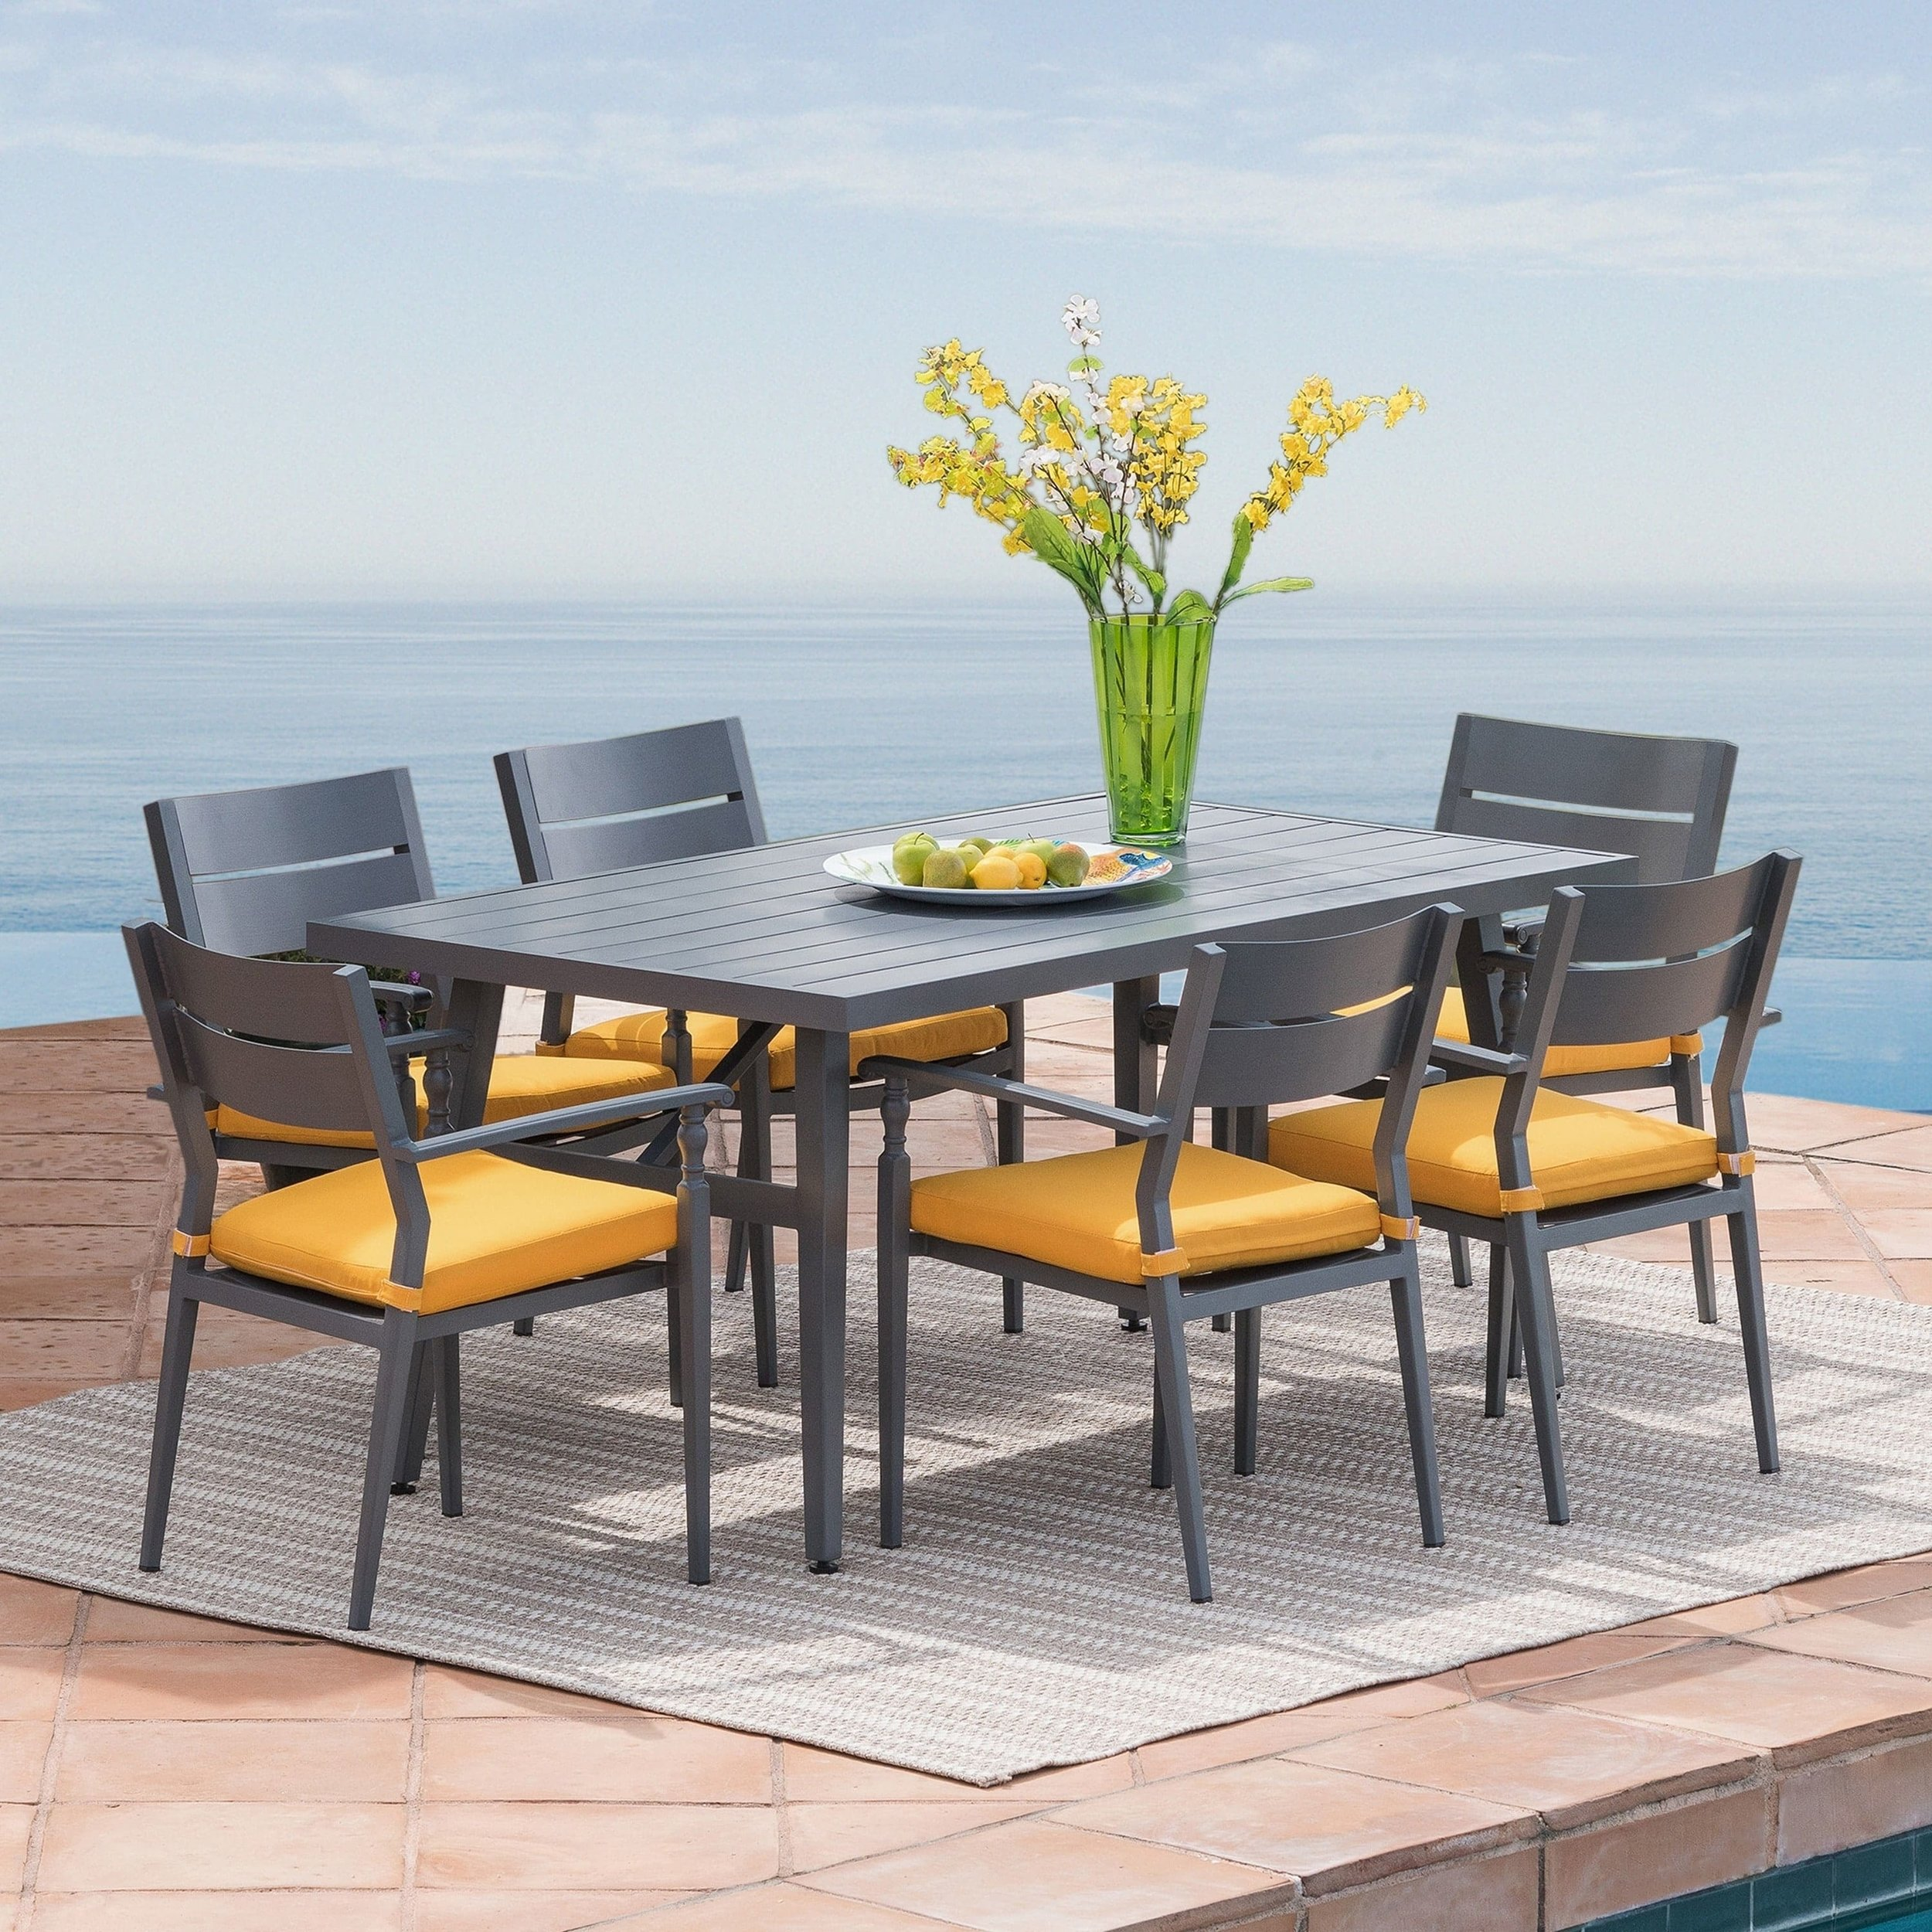 Corvus-Parma-7-piece-Patio-Dining-Set-with-Cushions-1b8ca558-75ec-40cd-a88f-34024eacffd4.jpg